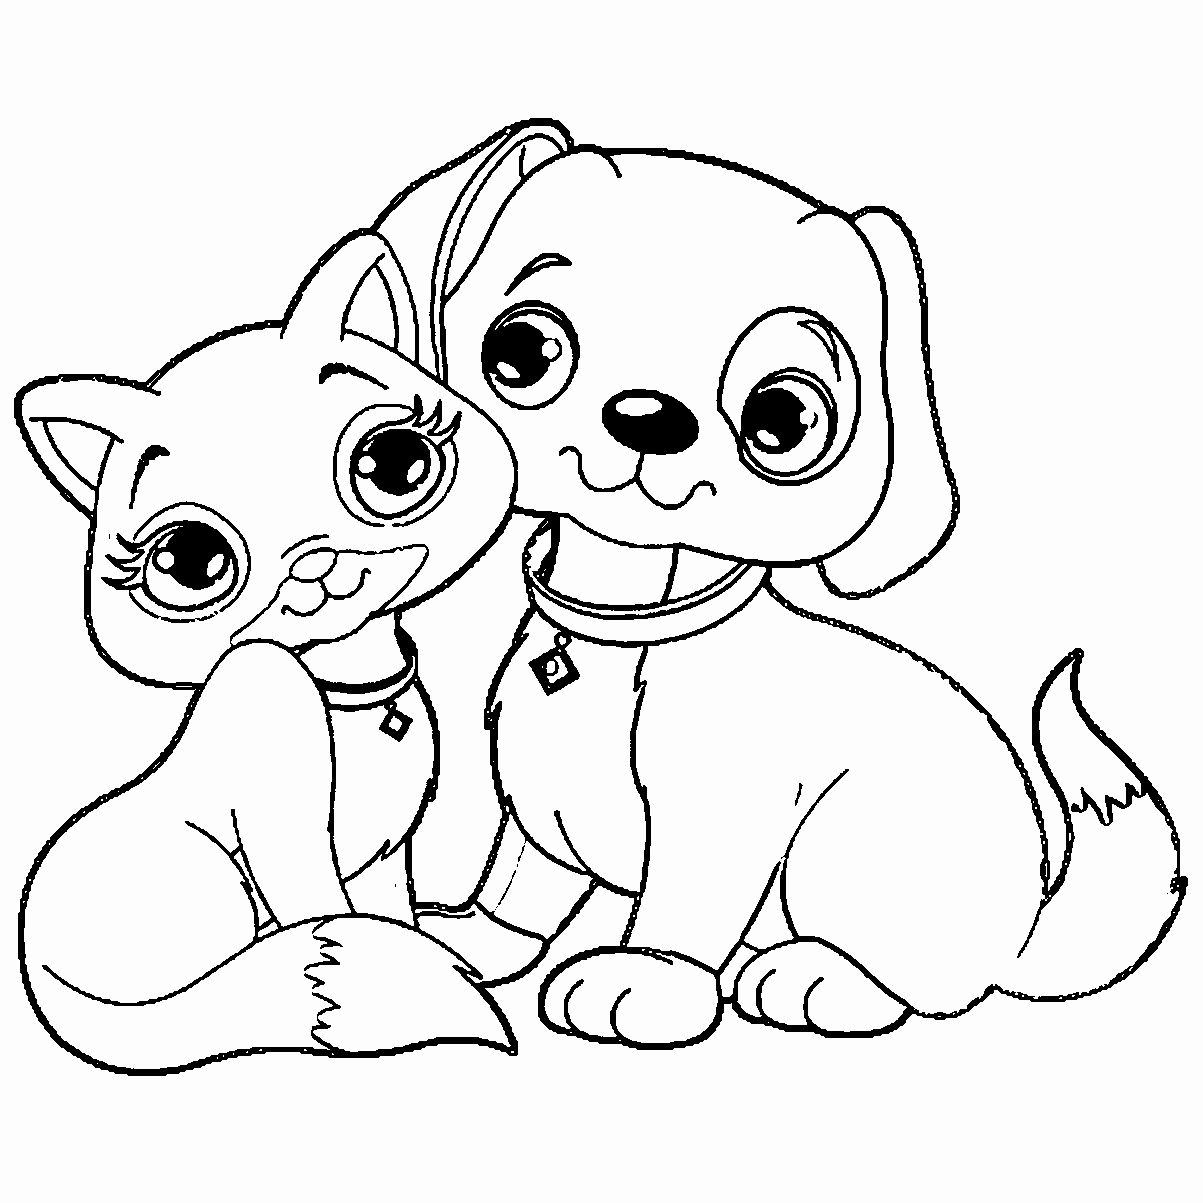 Dog Coloring Pages Pdf Unique Coloring Books Coloring Dog Cat Bird Remarkable And Kawaii Alphabet Penguin